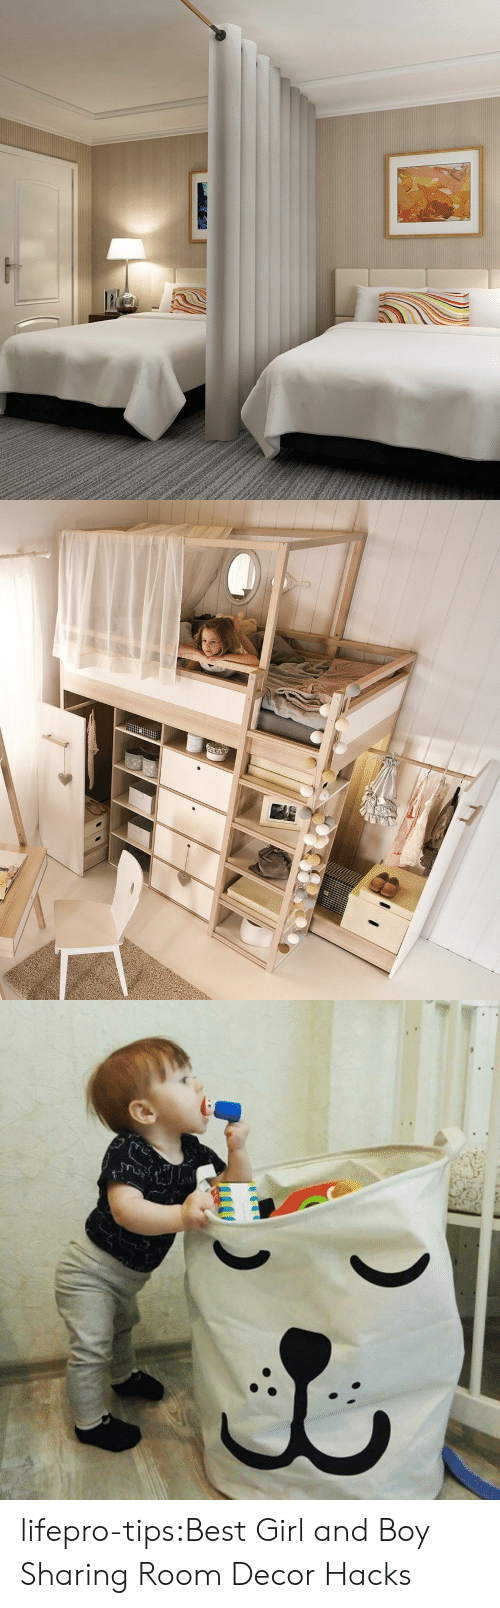 Tumblr, Best, and Blog: LLLL lifepro-tips:Best Girl and Boy Sharing Room Decor Hacks